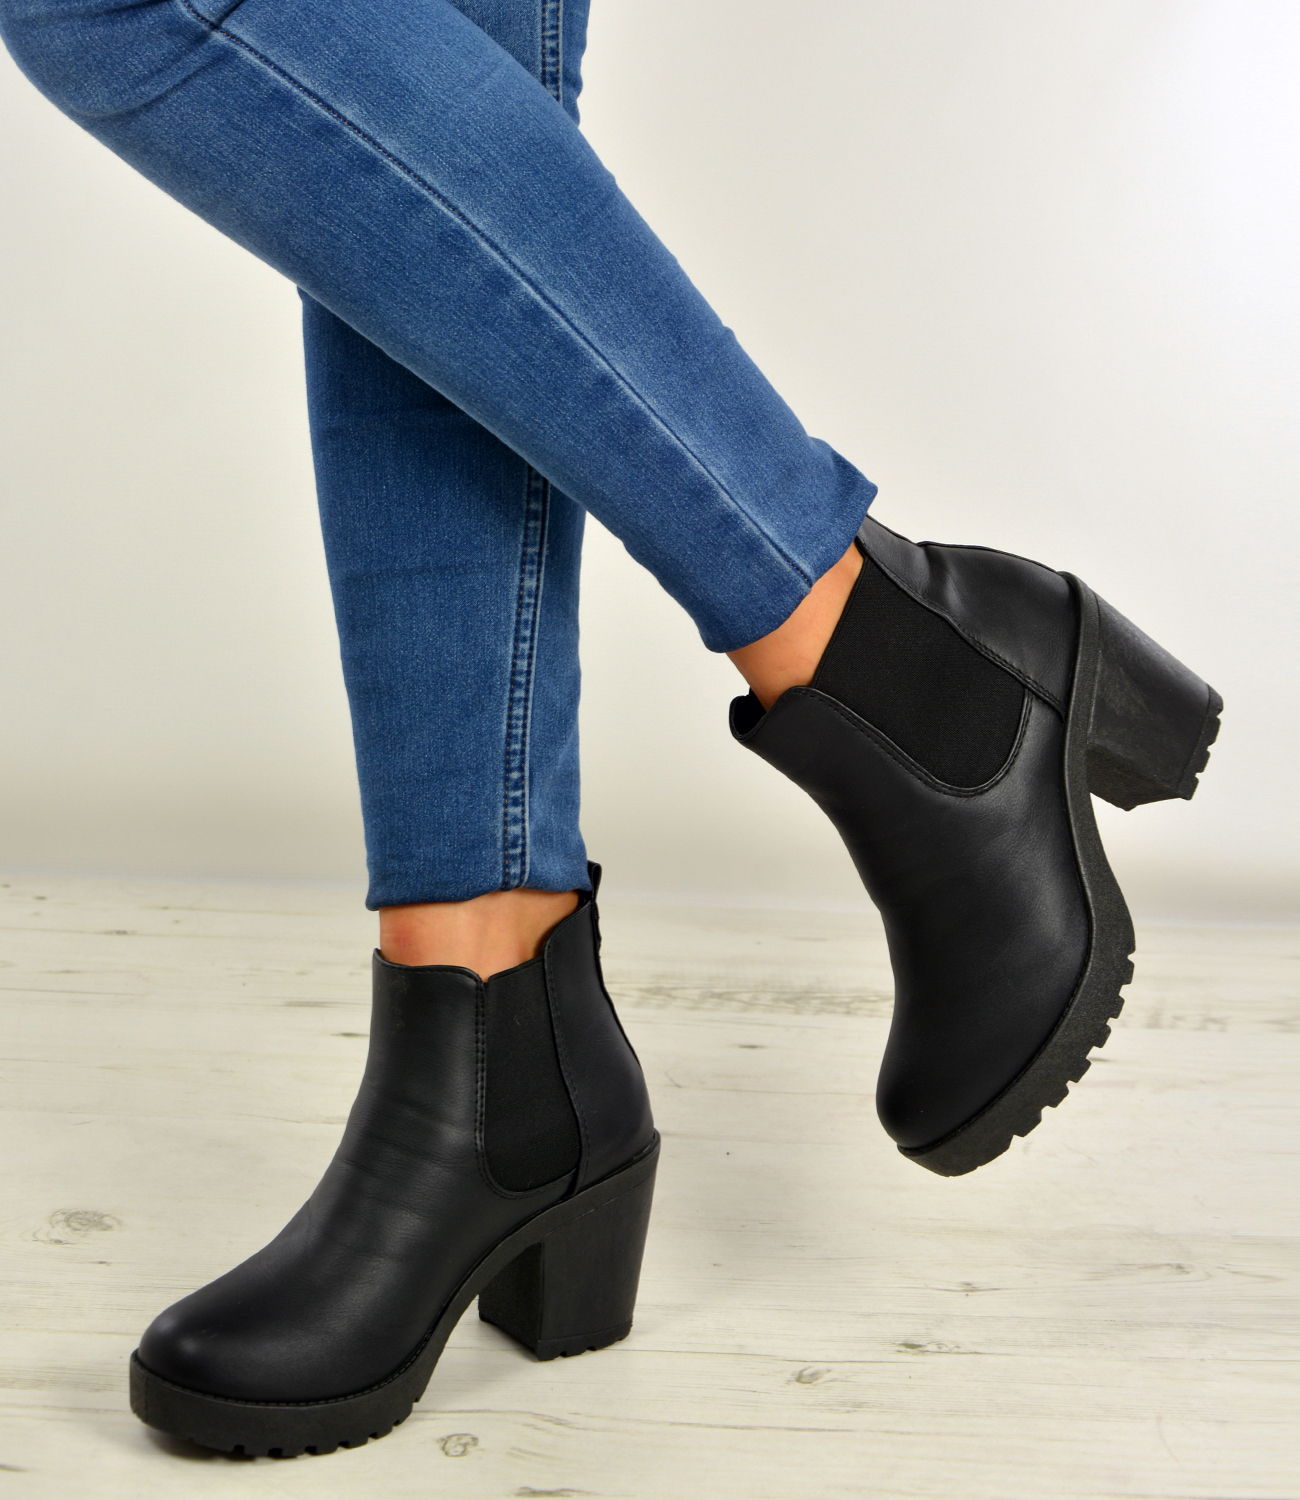 New-Womens-Ankle-Chelsea-Boots-Chunky-Block-Heels-Platform-Shoes-Size-Uk-3-8